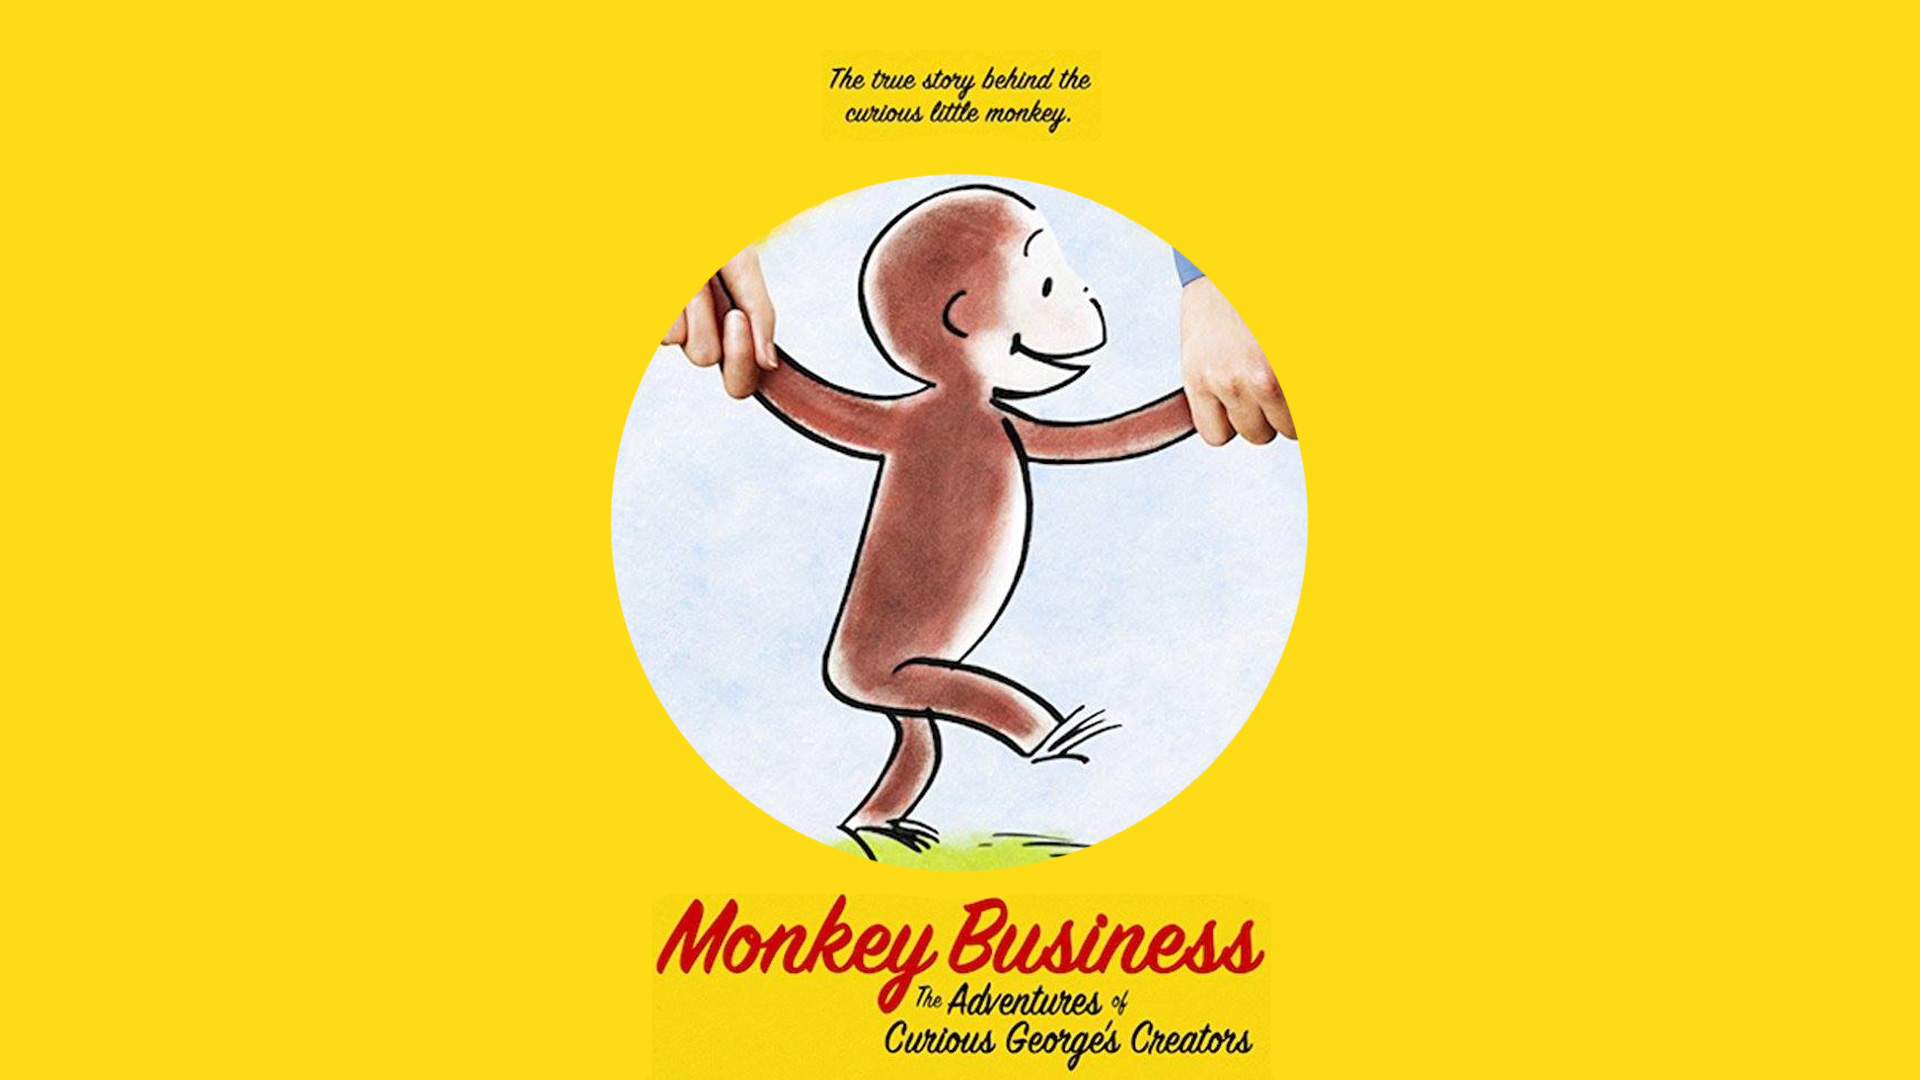 Monkey Business: The Adventures of Curious George's Creators screens at the Tucson J on January 14 at 1 pm as part of the 2018 Tucson International Jewish Film Festival.